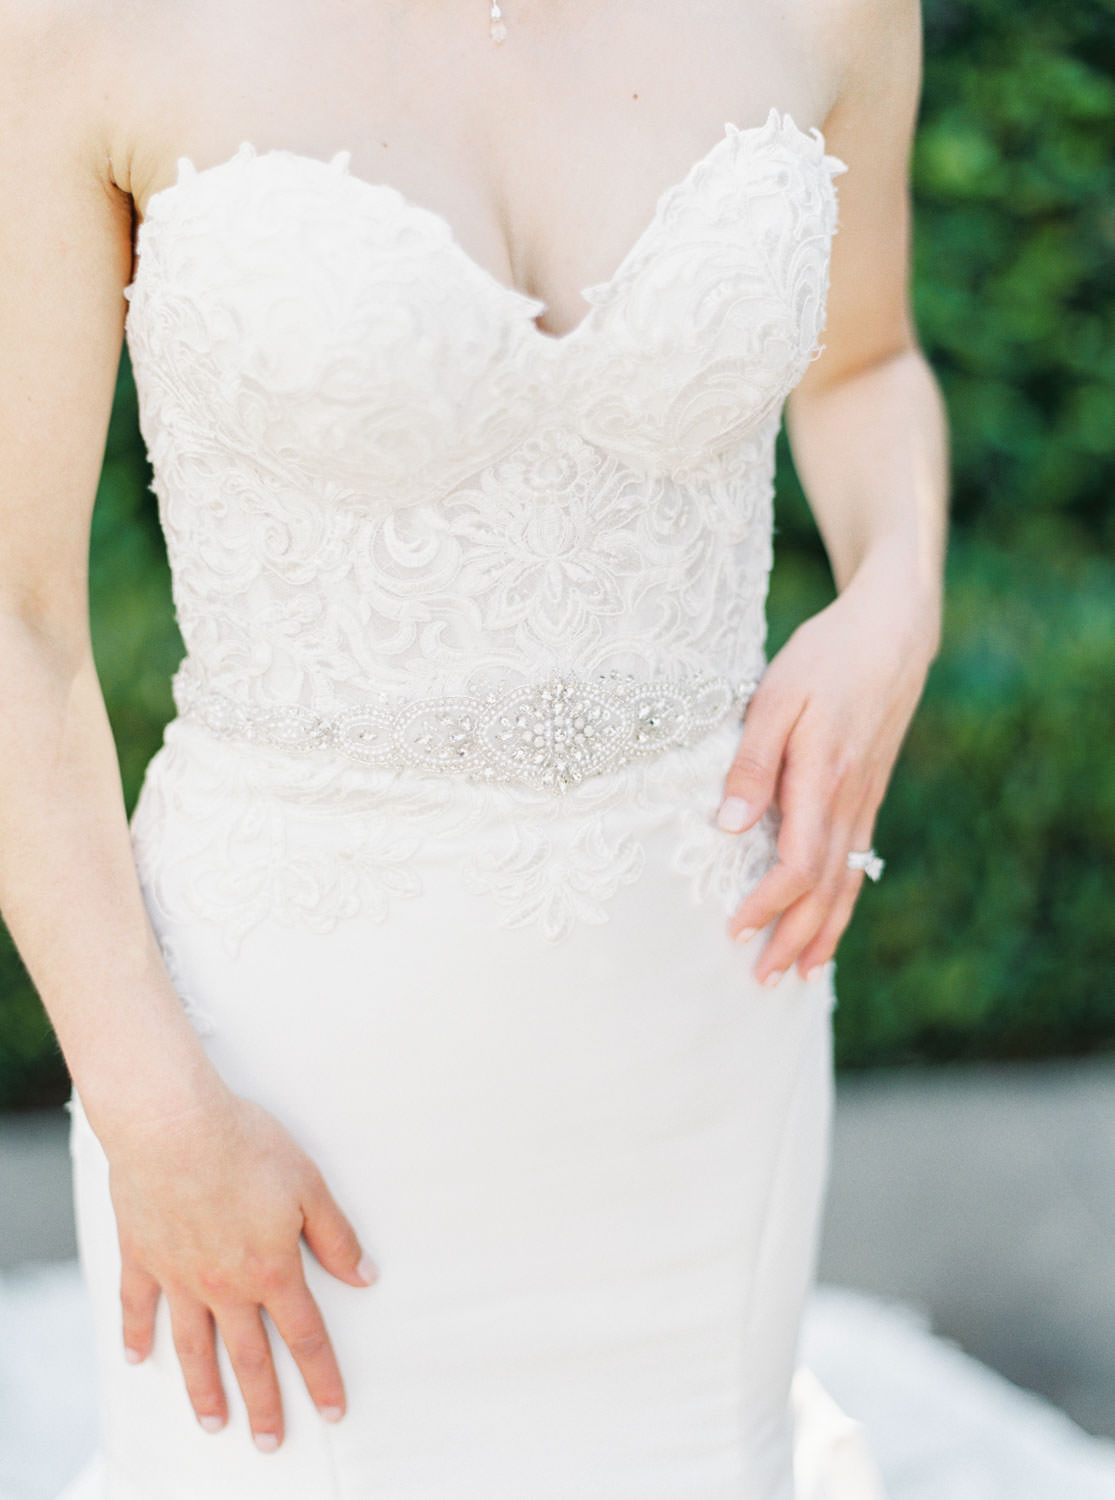 Bridal gown with lace and jewels captured on film, Santalux Club wedding reception, Cavin Elizabeth Photography